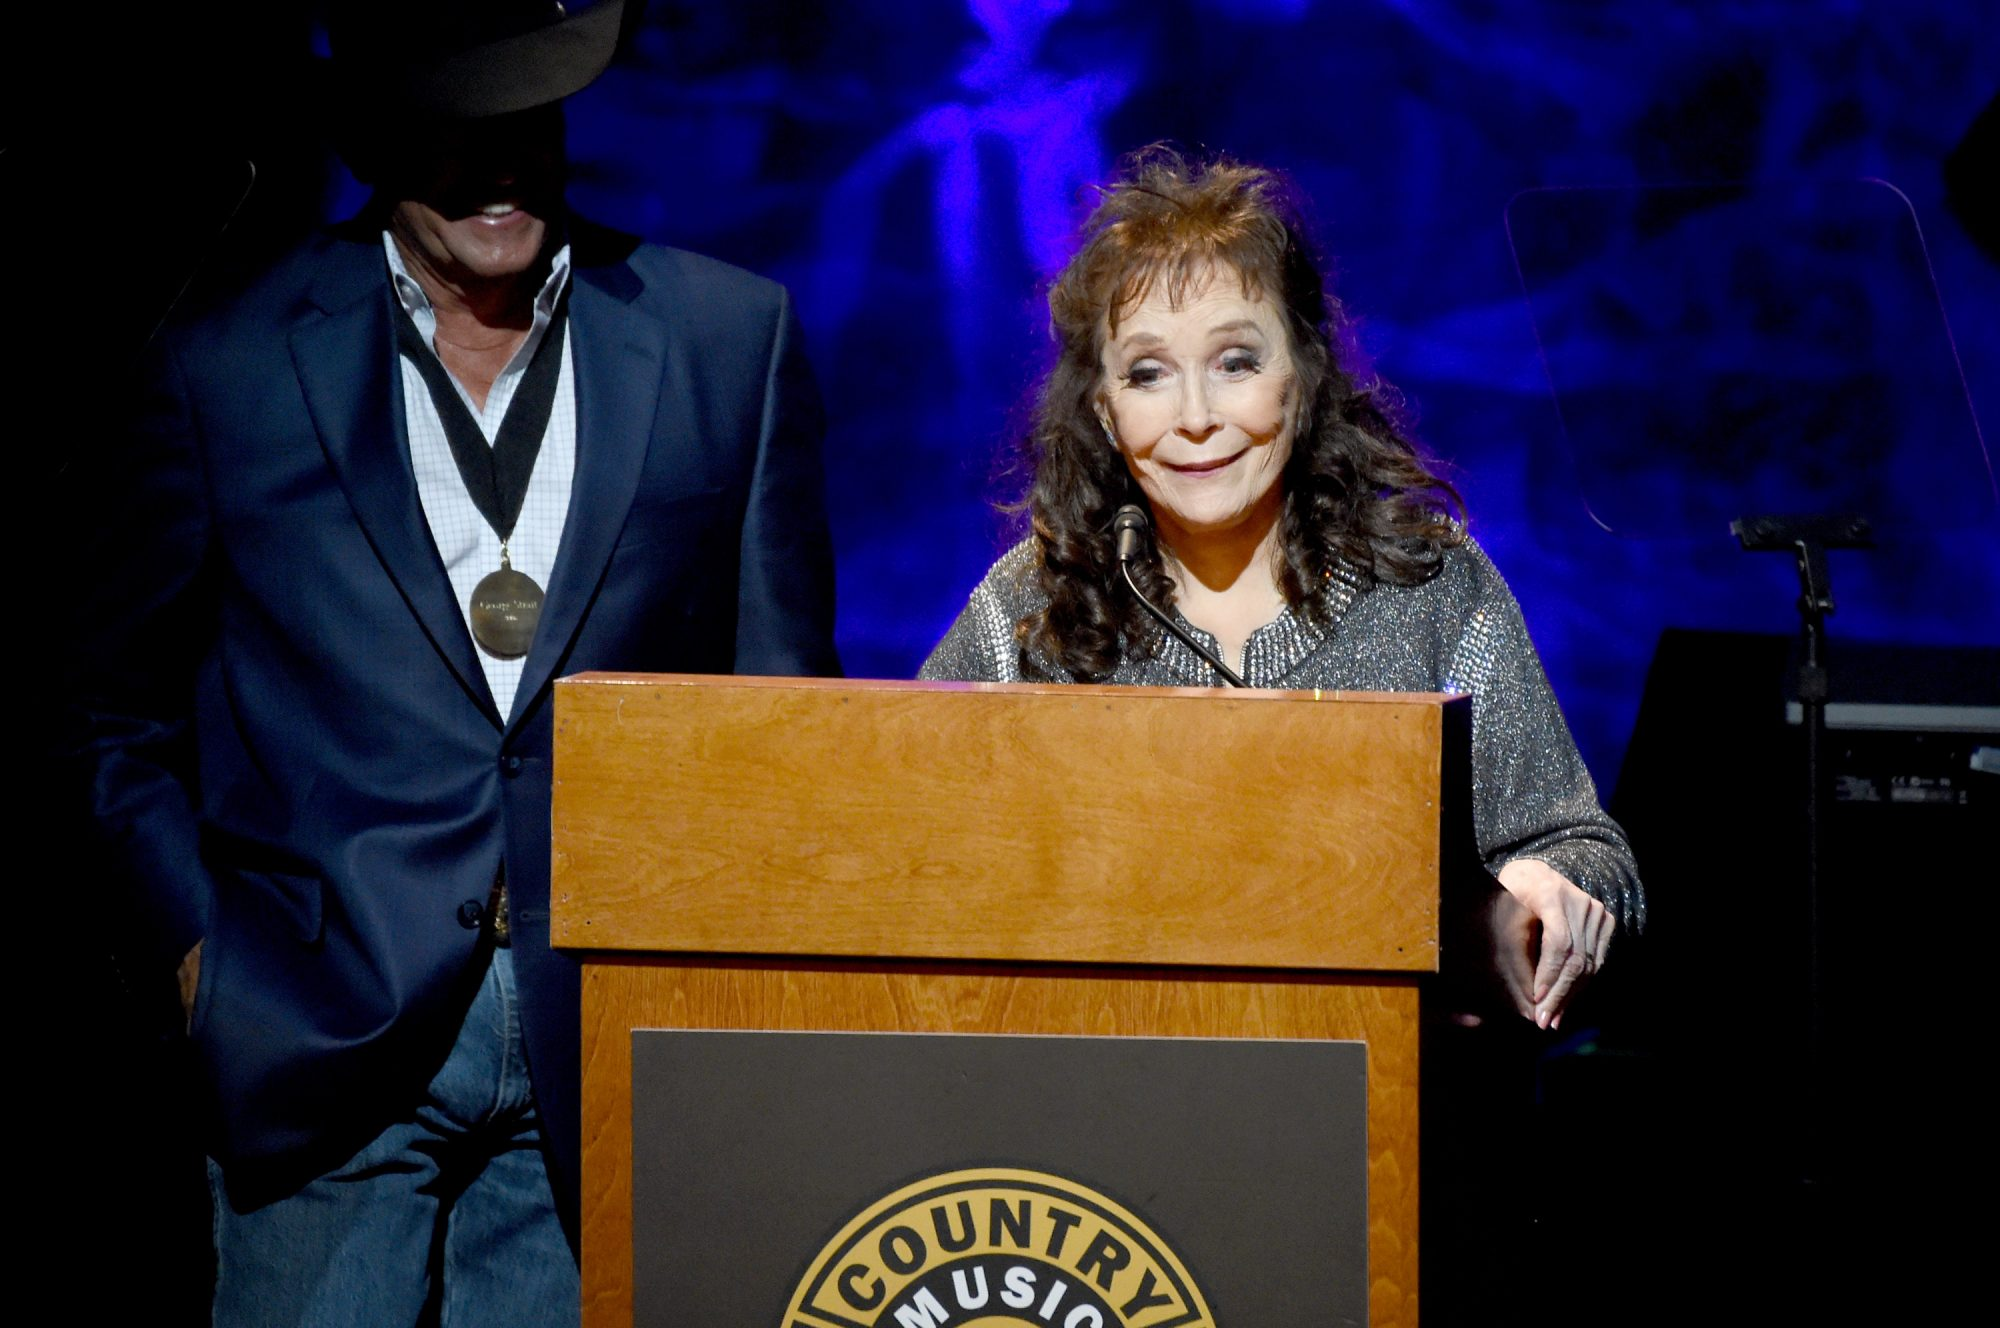 Loretta Lynn and George Strait